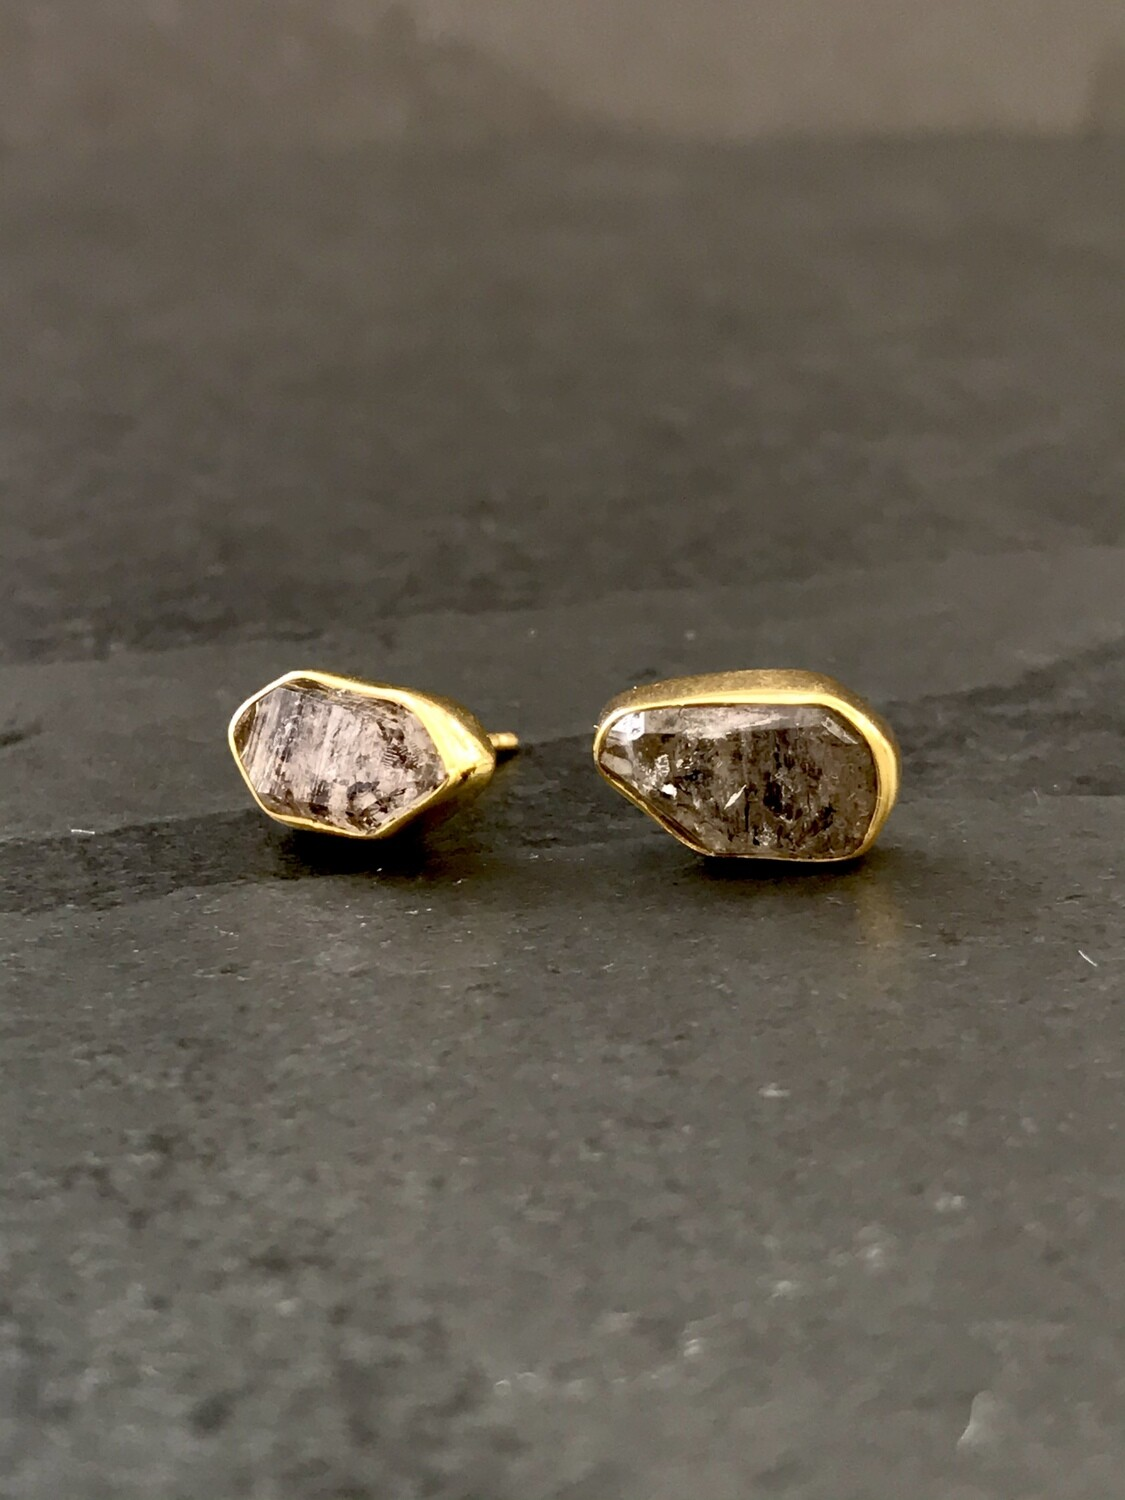 Gold Over Silver Herkimer Post Earrings - P91-3